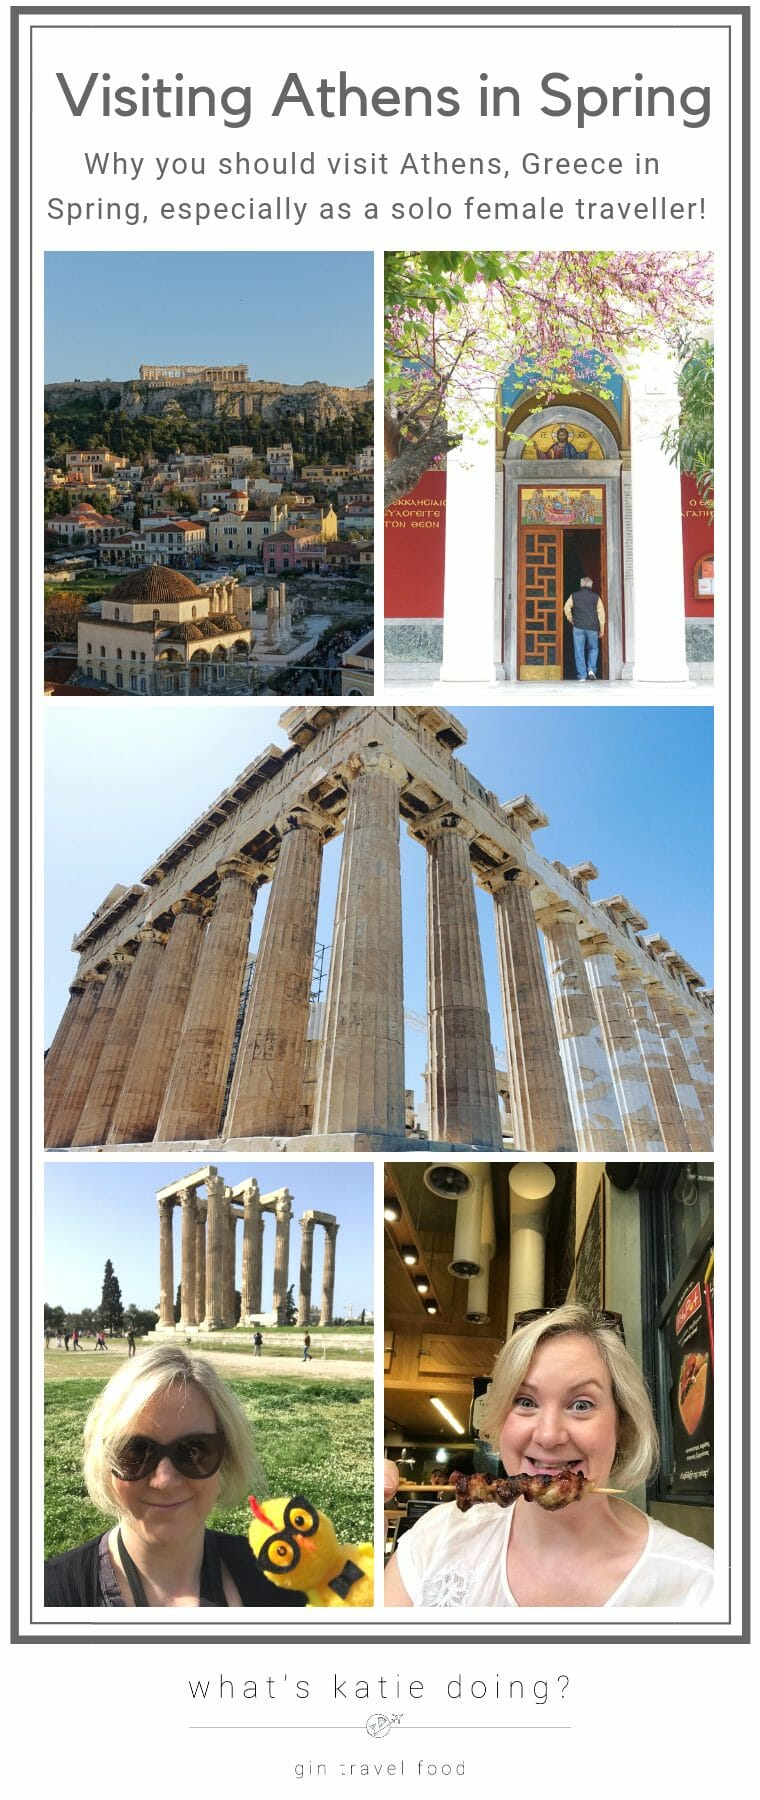 Why you should visit Athens in Spring as a solo female traveller